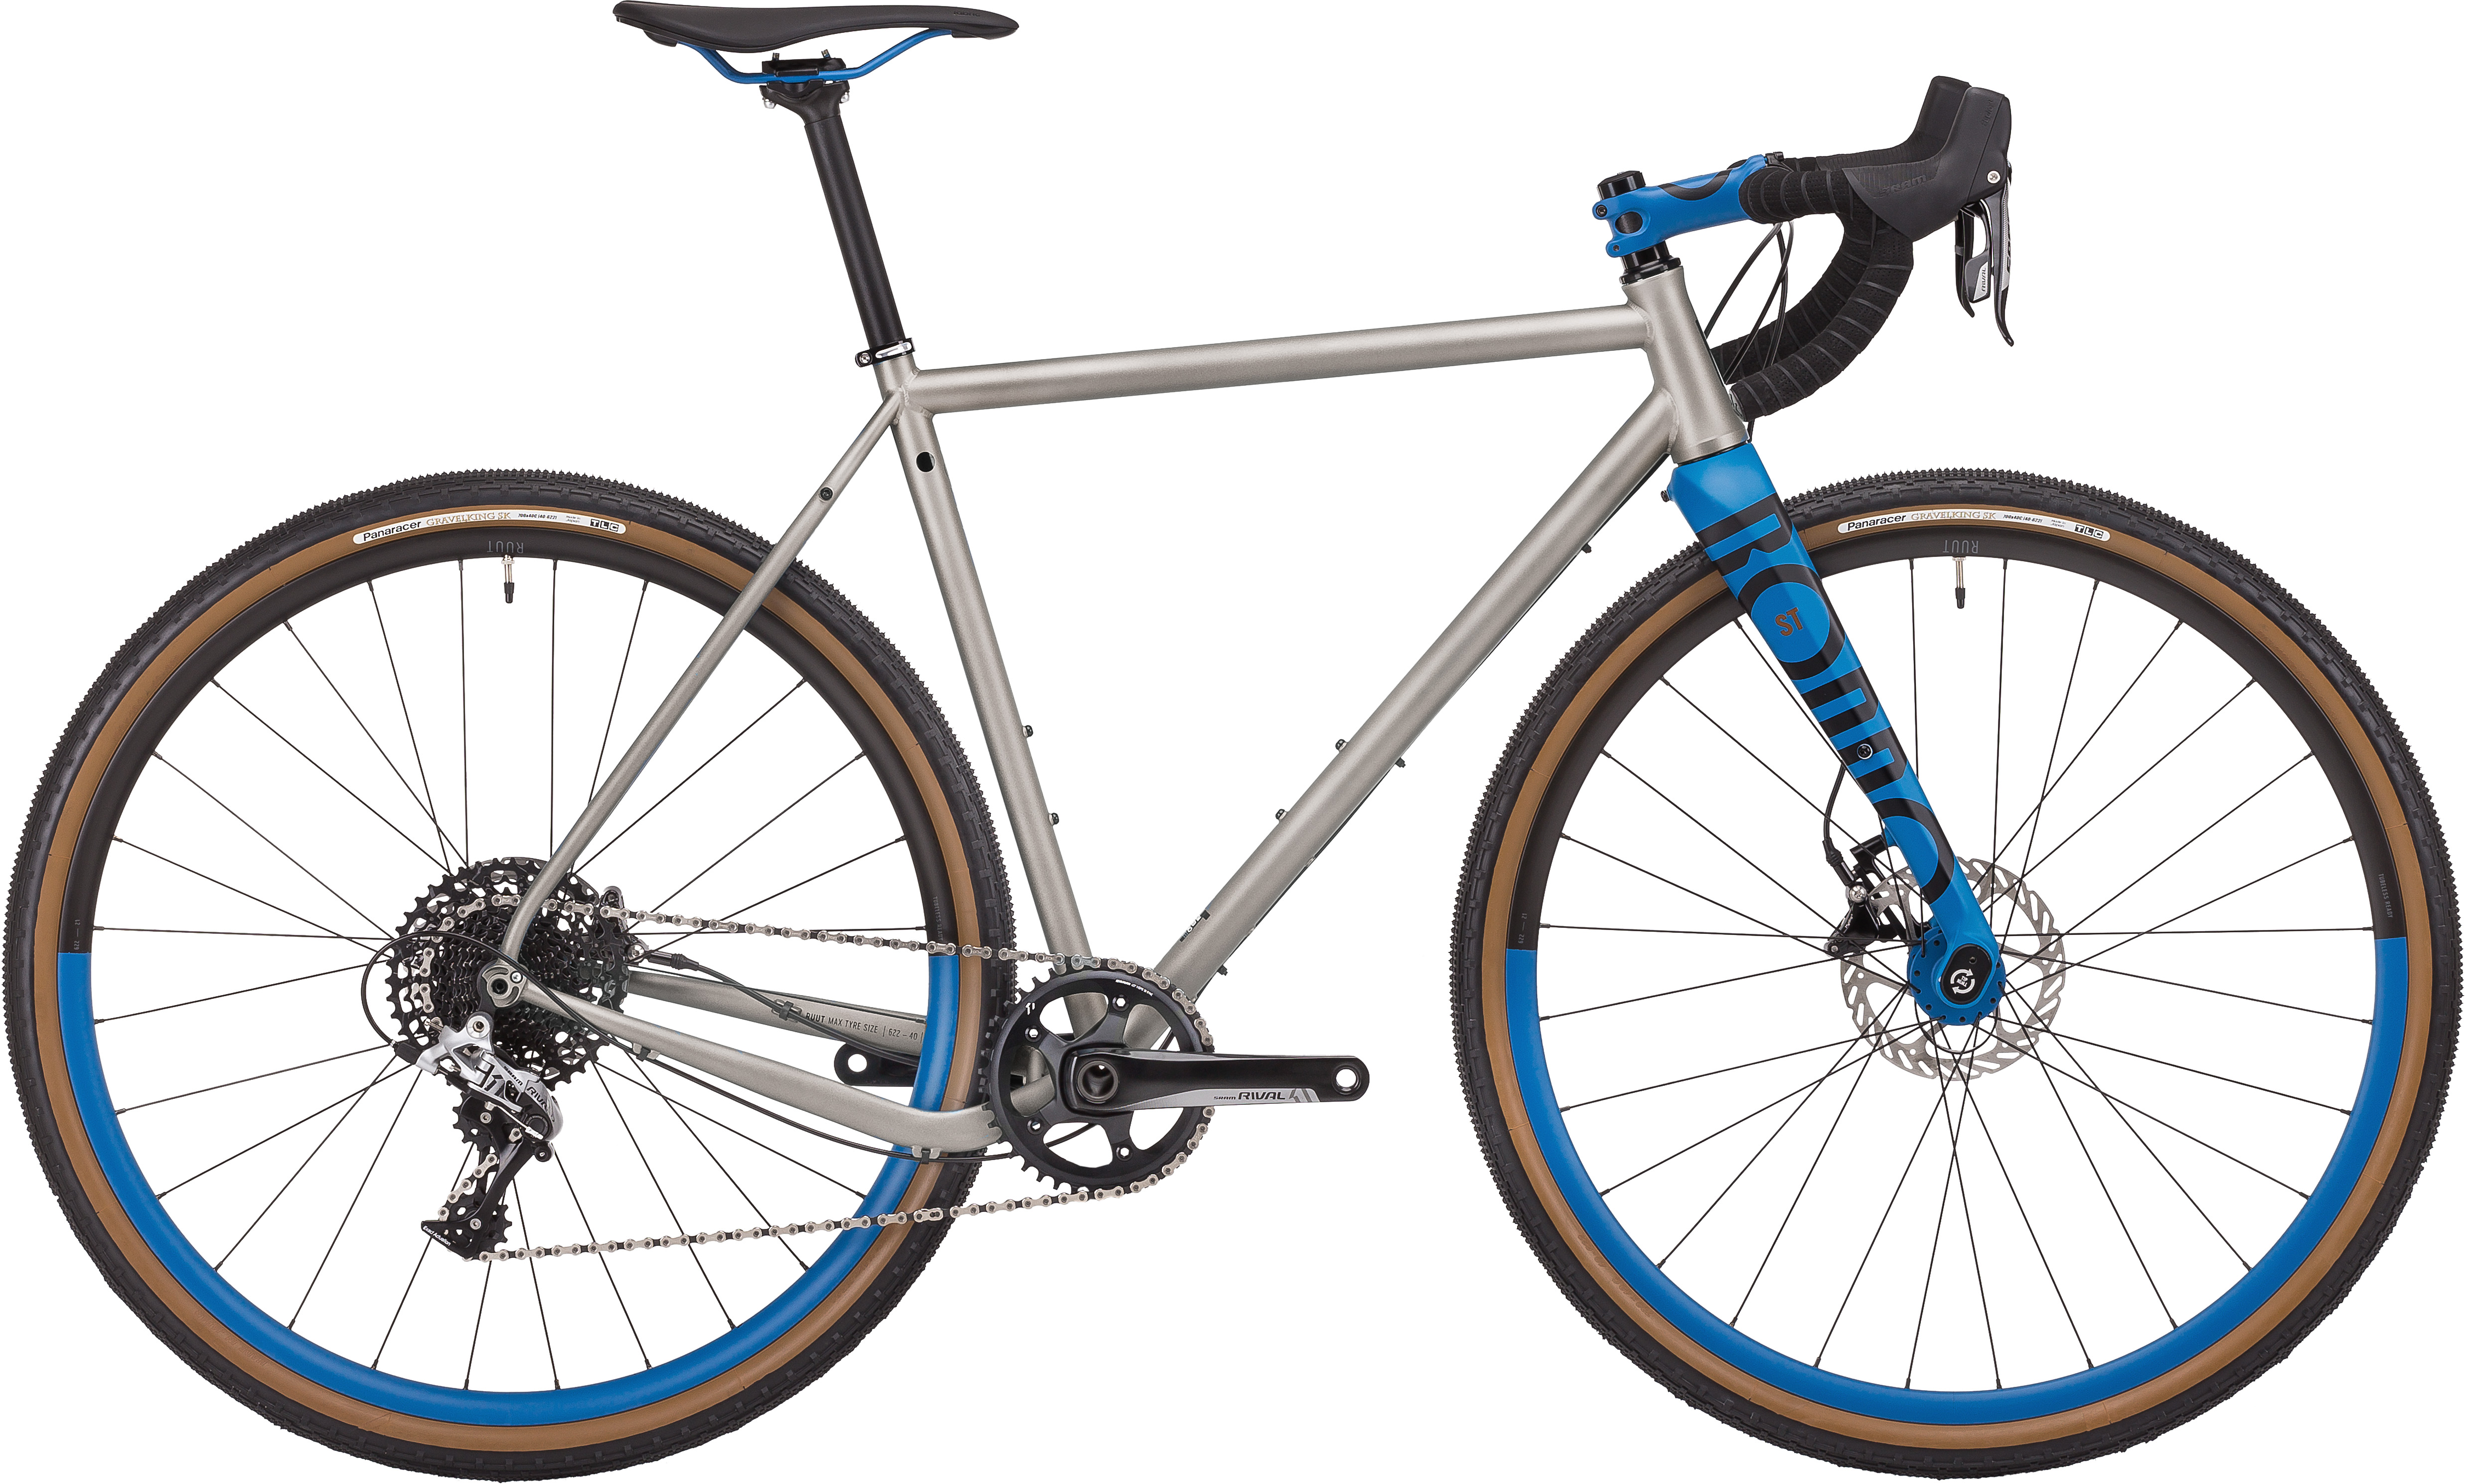 Rondo Ruut ST Gravel Bike (2019) | Road bikes